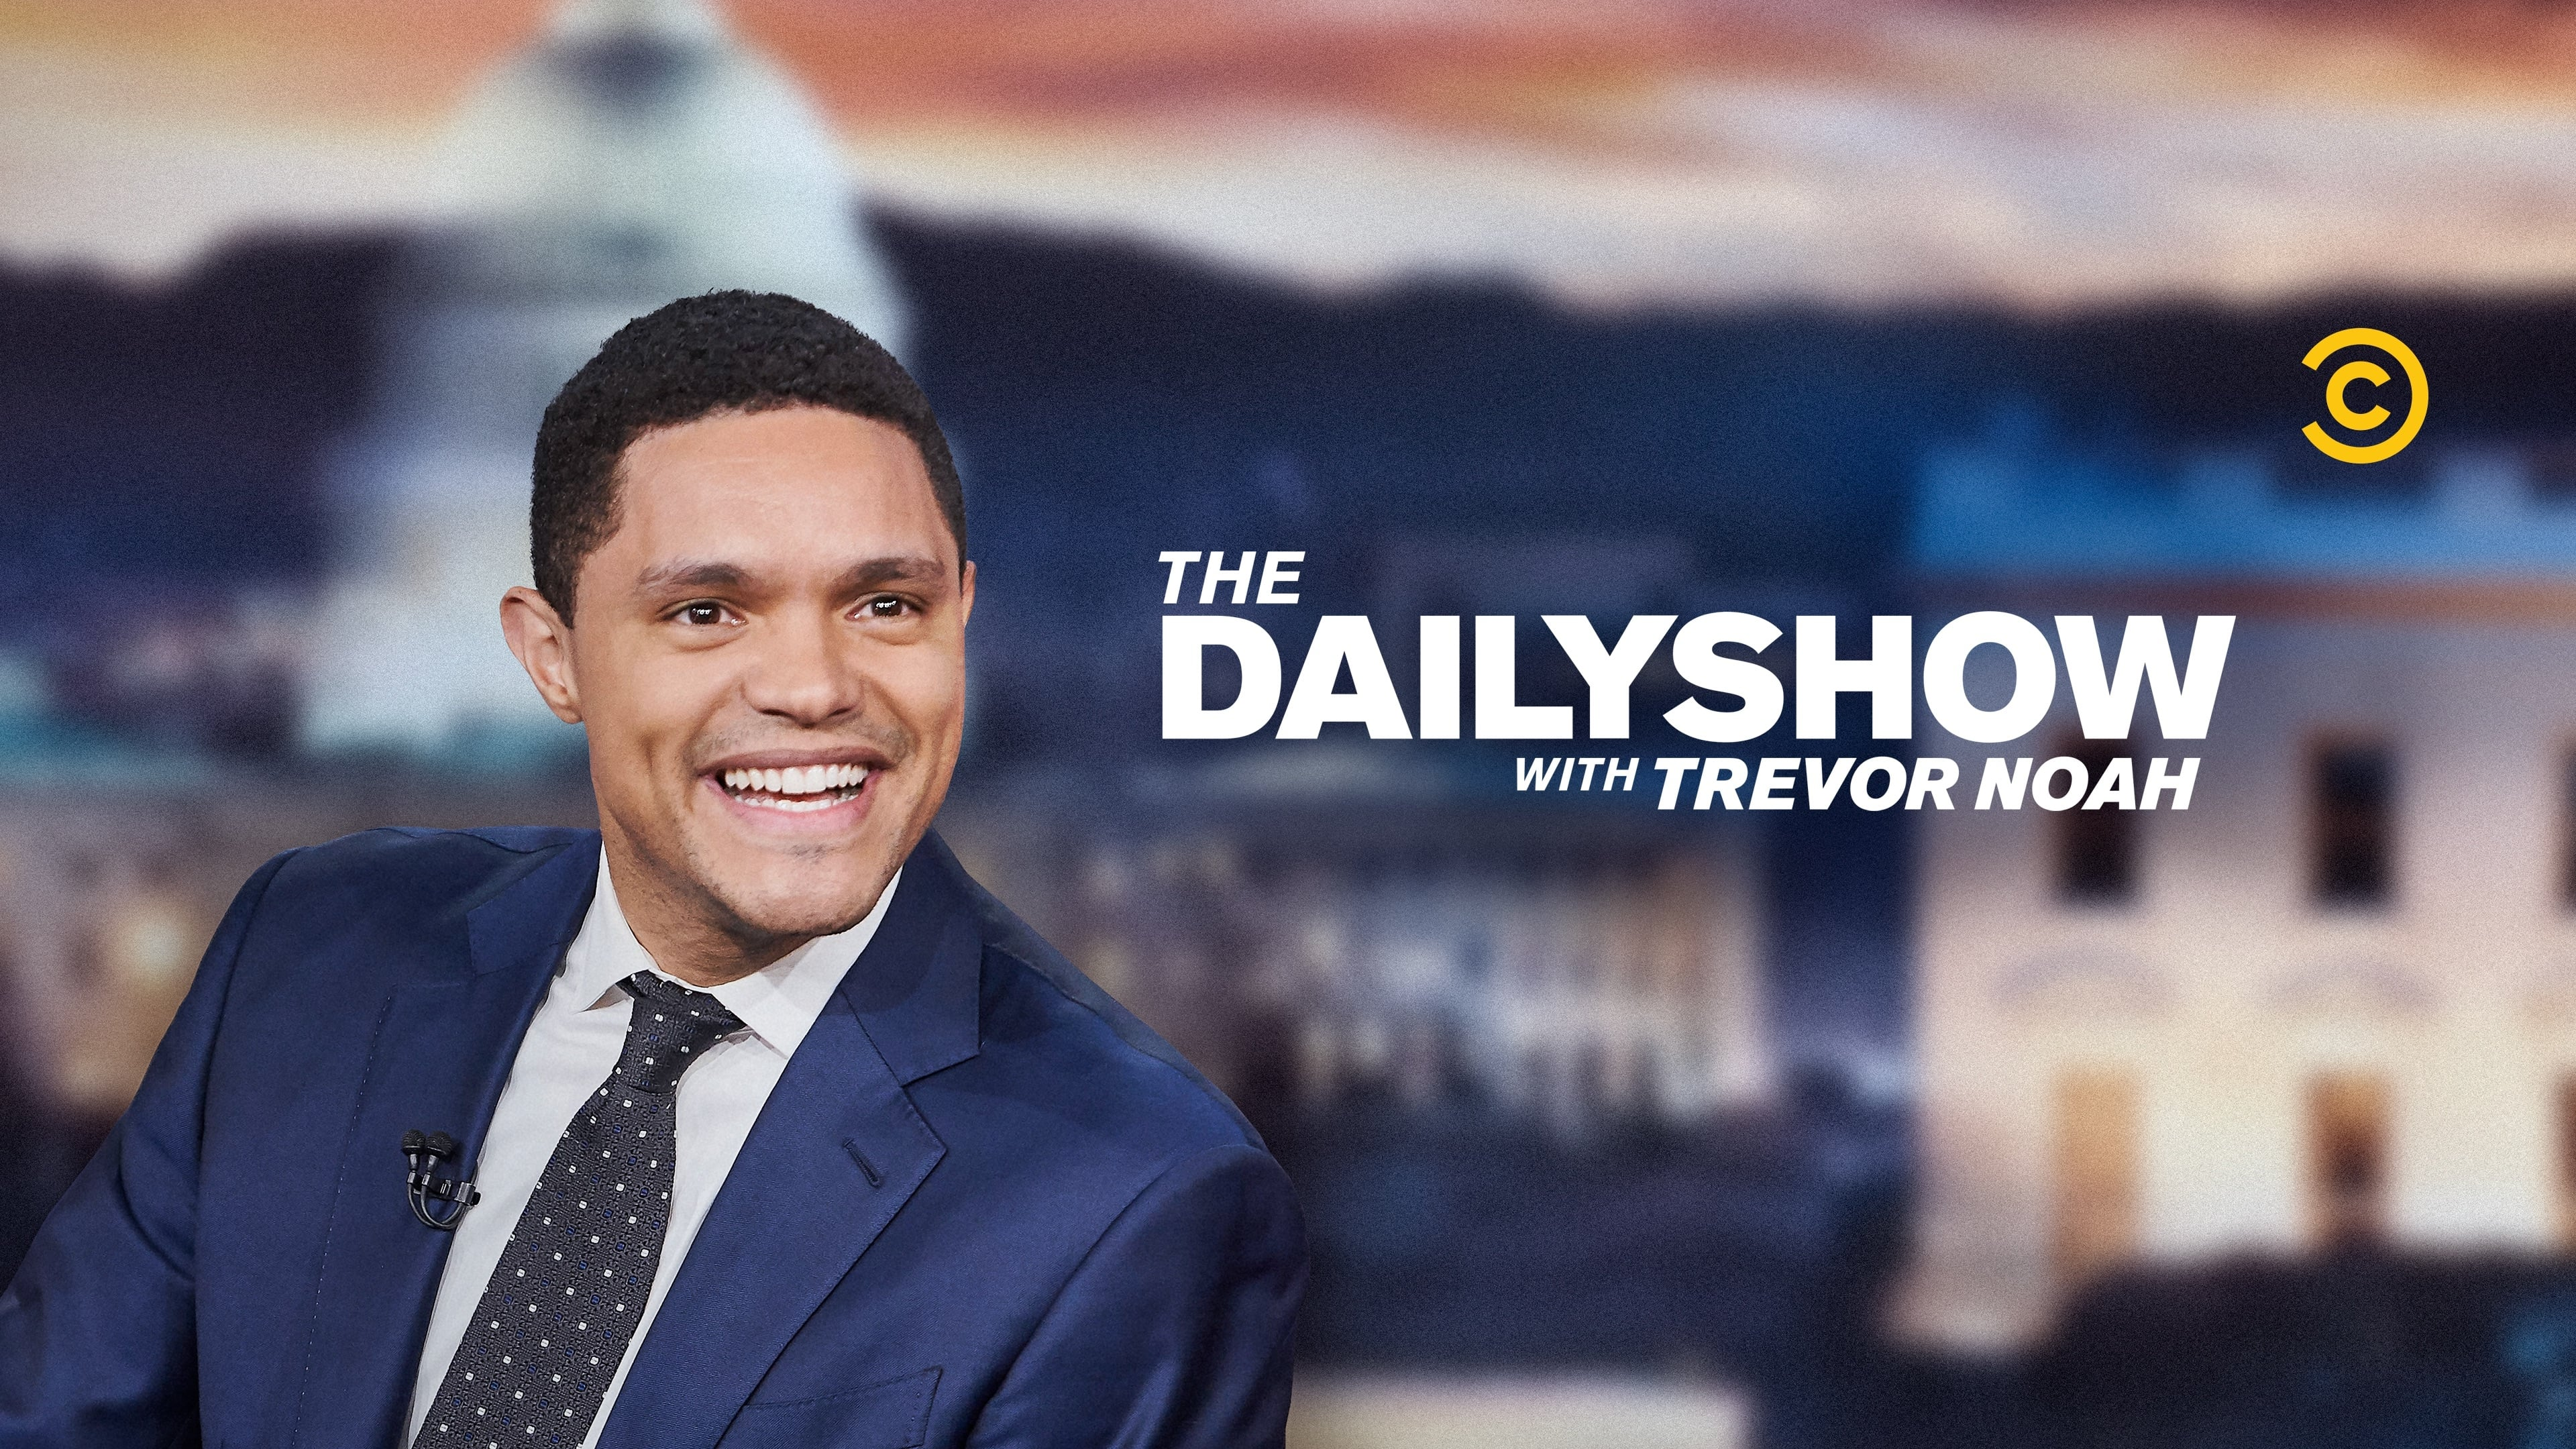 The Daily Show with Trevor Noah - Season 9 Episode 34 : George Carlin